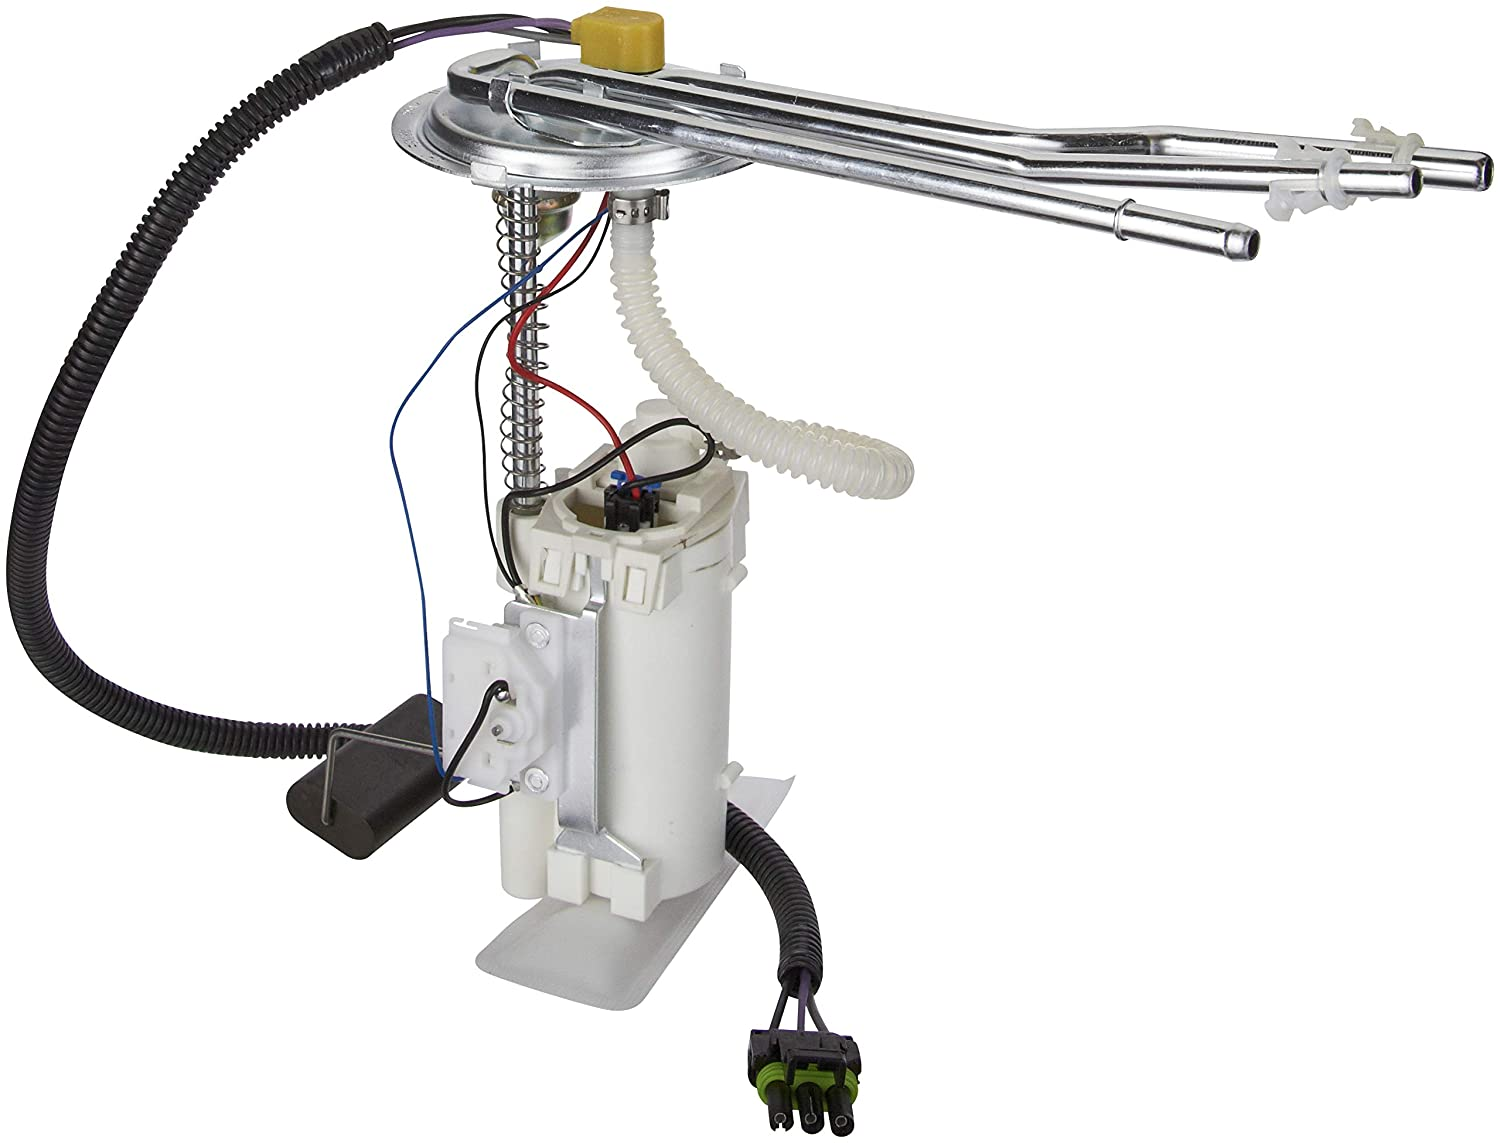 Spectra Premium Sp128b1h Fuel Hanger Assembly With Pump Gm Sending Unit Wiring And For Buick Chevrolet Automotive